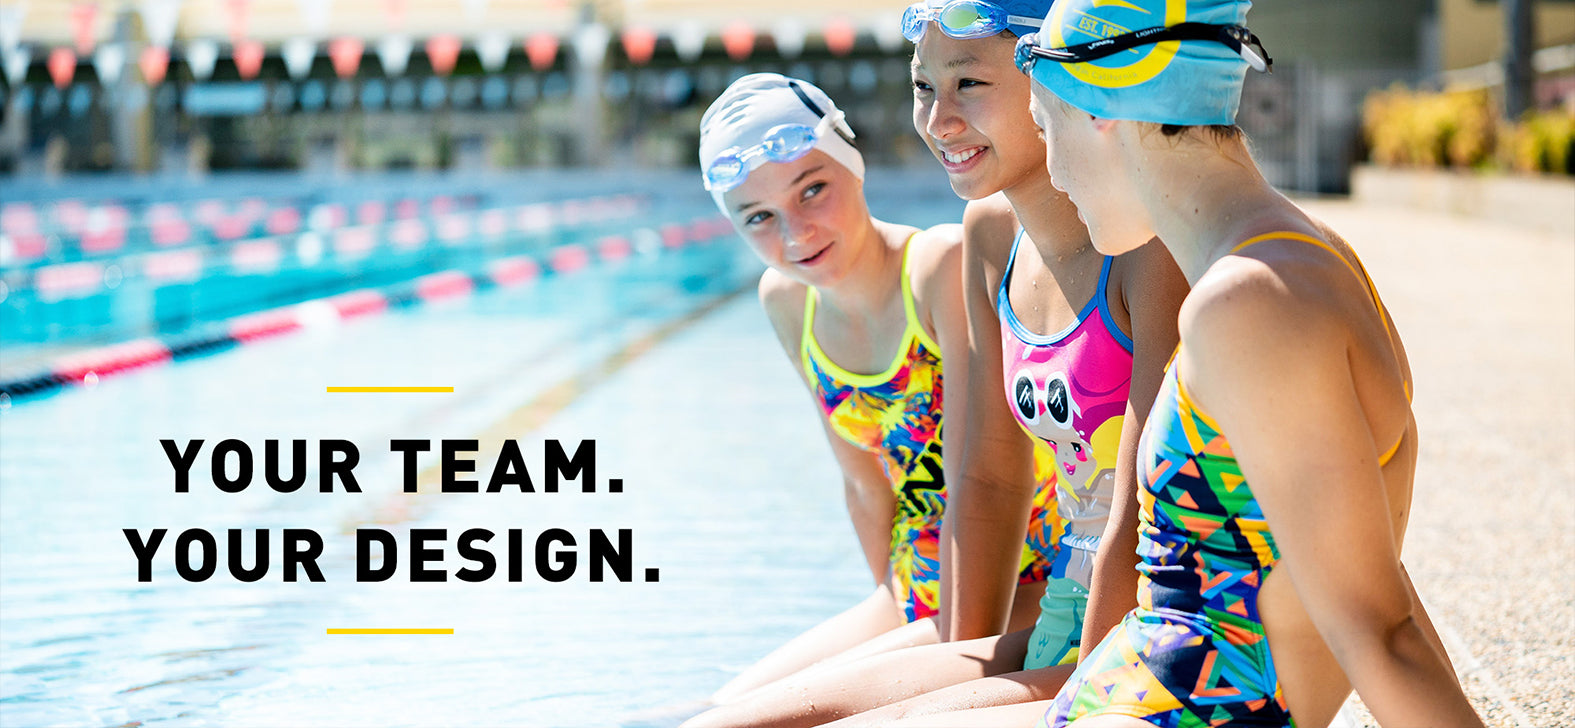 3 girls wearing finis custom Bladeback swimsuits,  Openback swimsuits, smiling by the Finis Swimming Pool in California.